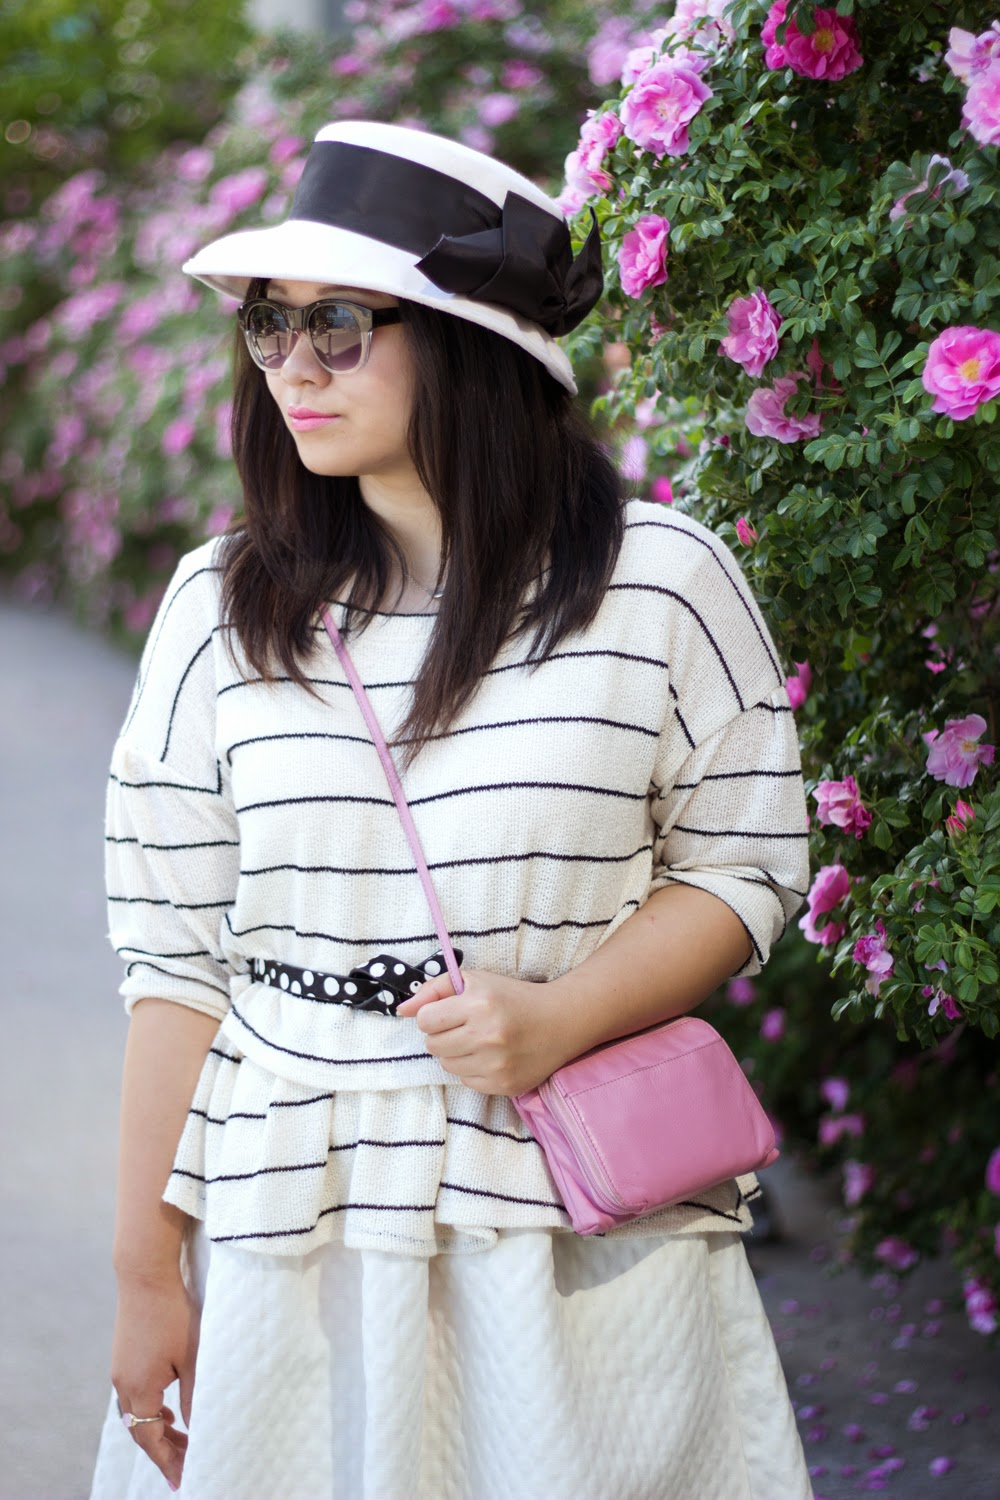 Anthropologie-Stripe-sweater, White-midi-skirt, Pink-cross-body-bag, retro-hat-with-bow